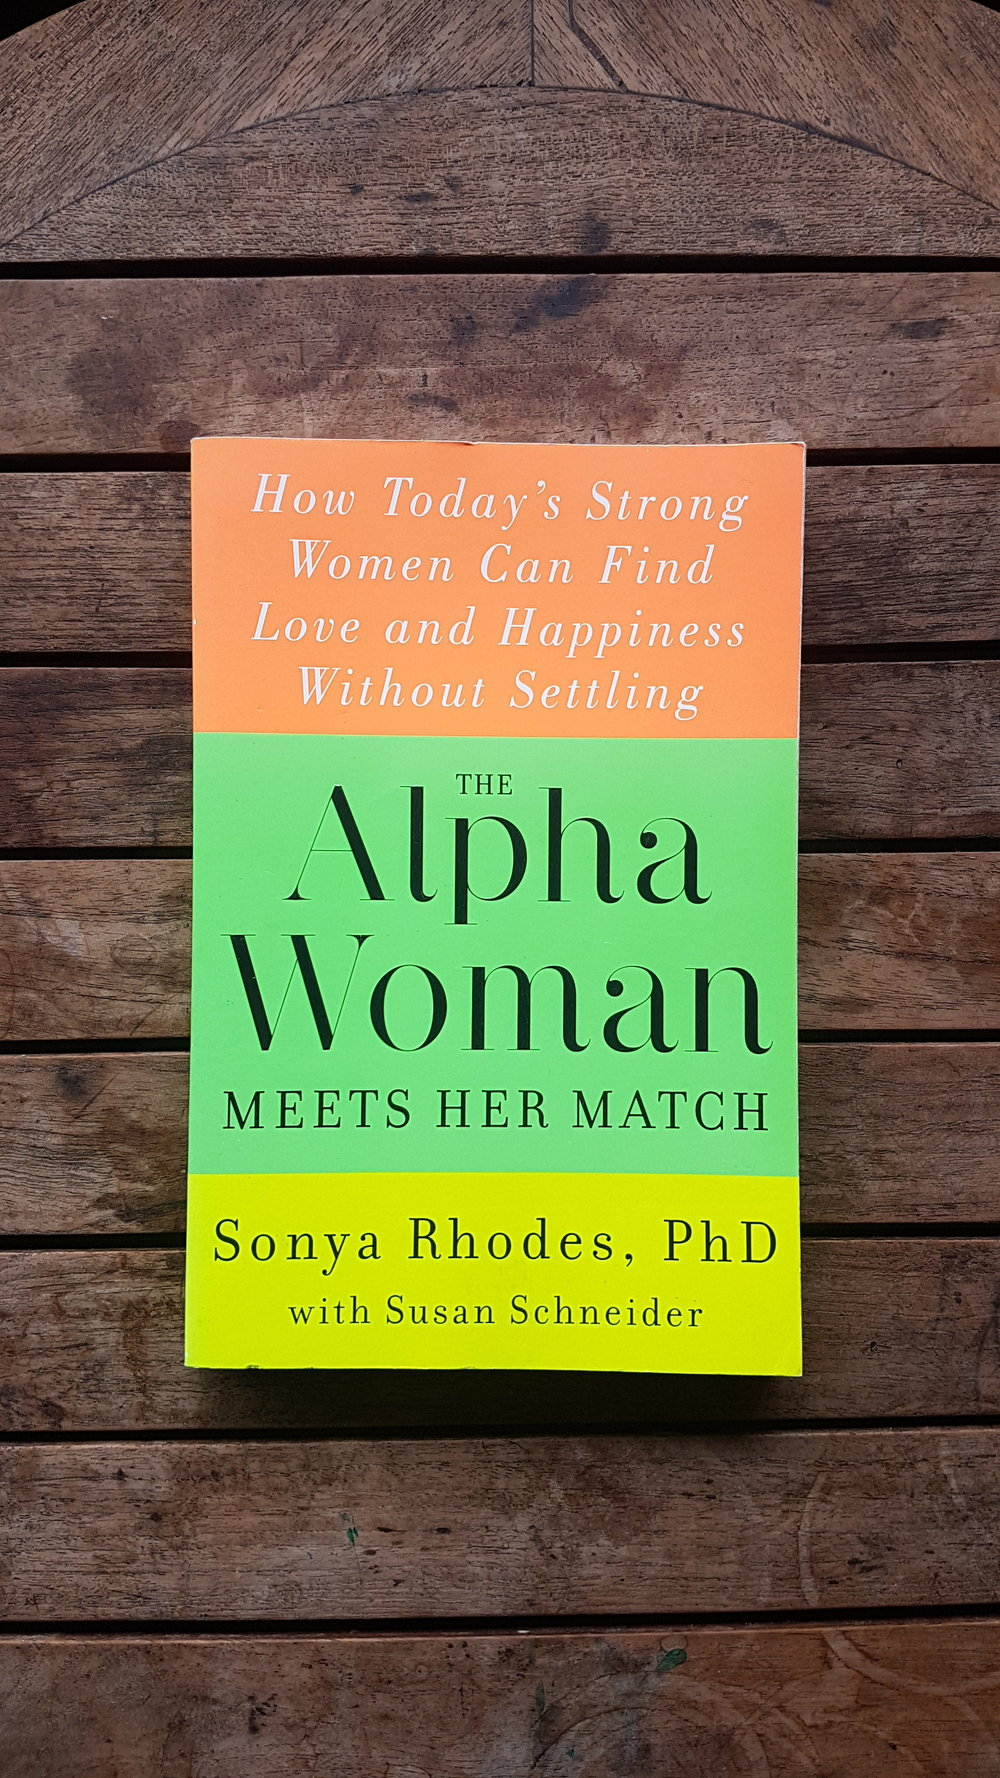 The Alpha Woman Meets Her Match: How Today's Strong Women Can Find Love and Happiness Without Settling   by Sonya Rhodes